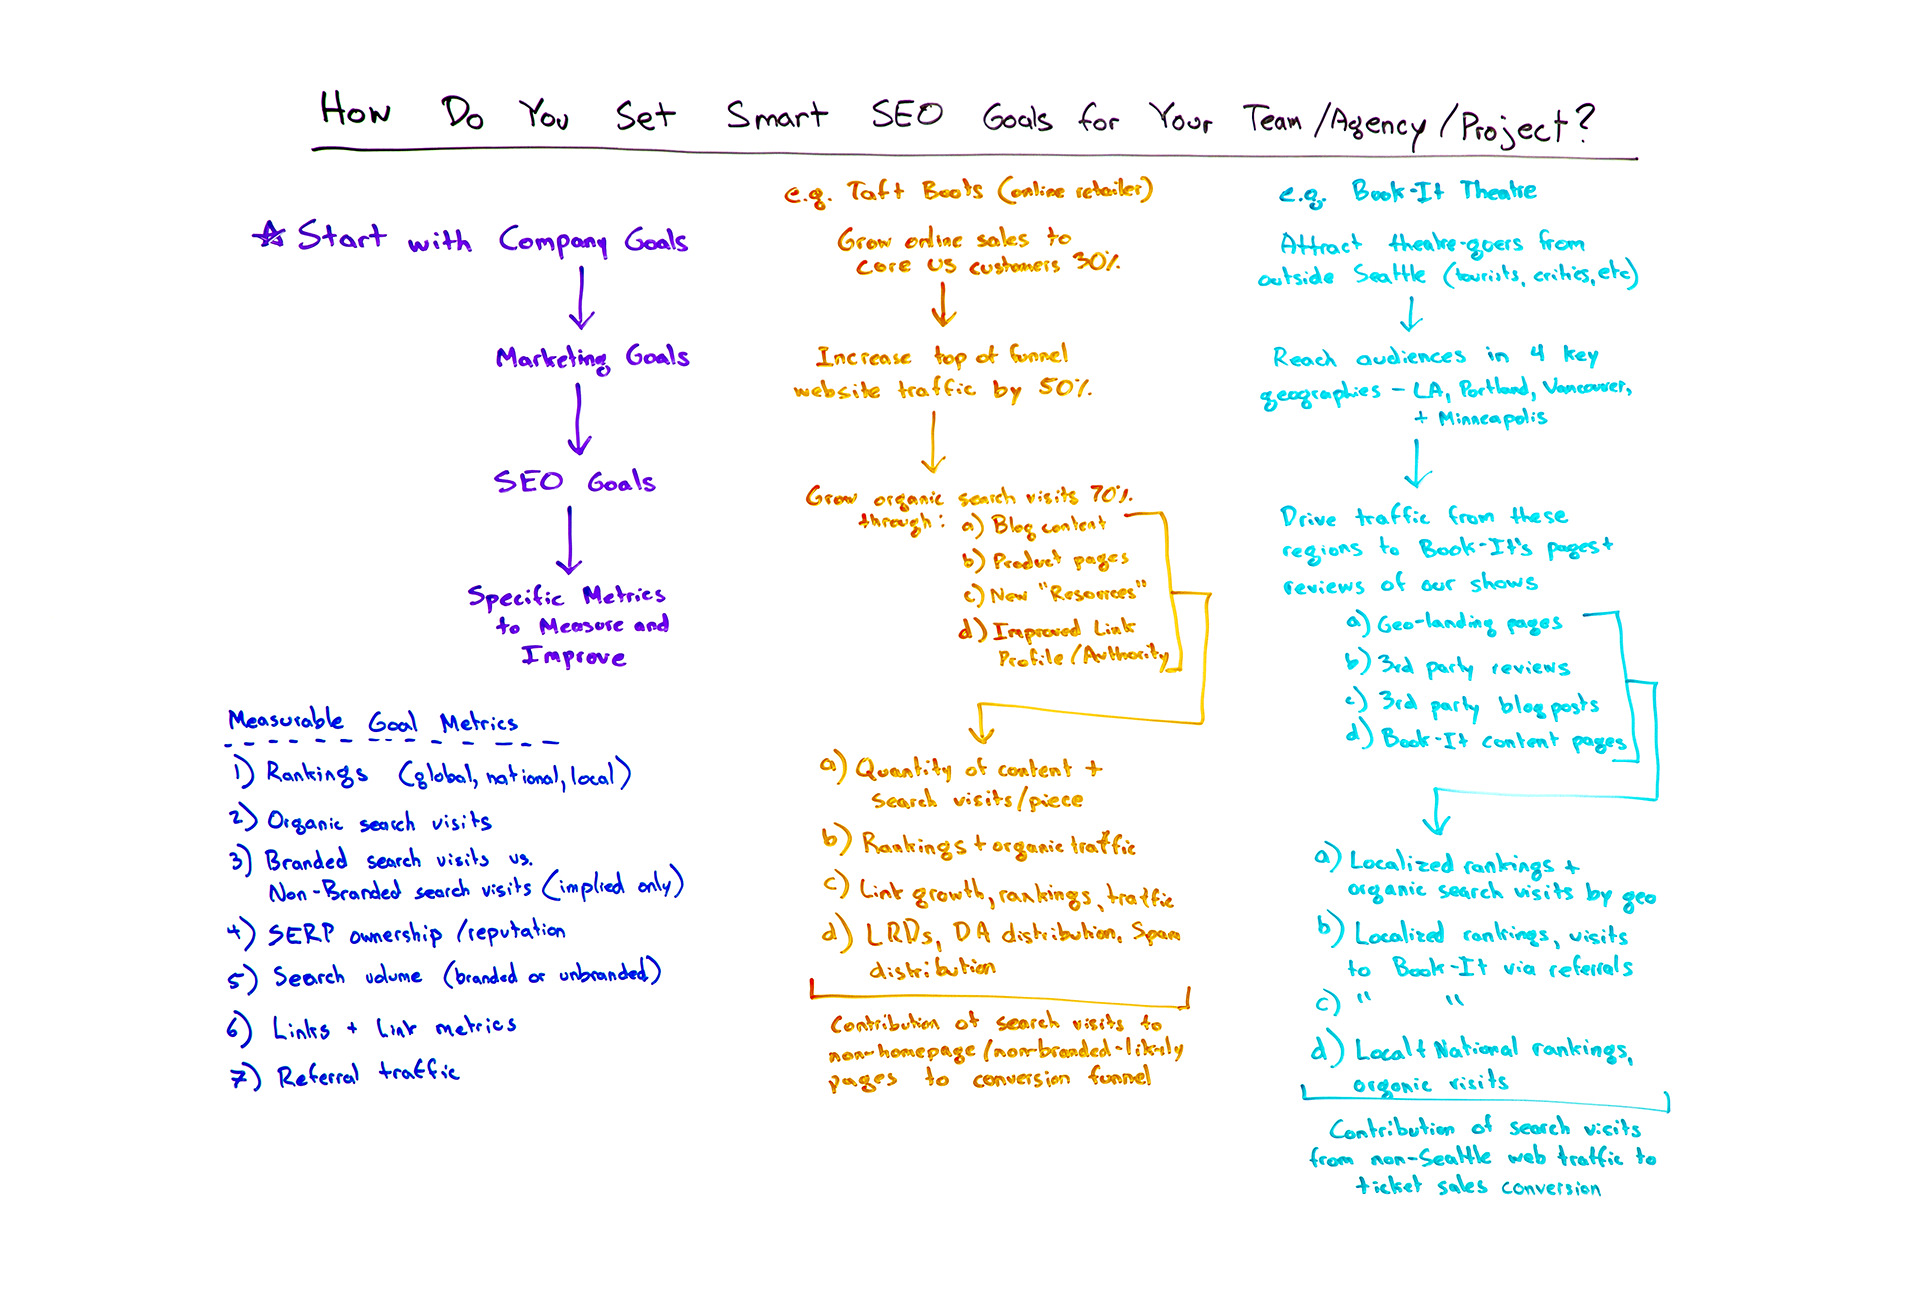 Setting Smart SEO Goals for Your Team, Agency, or Project